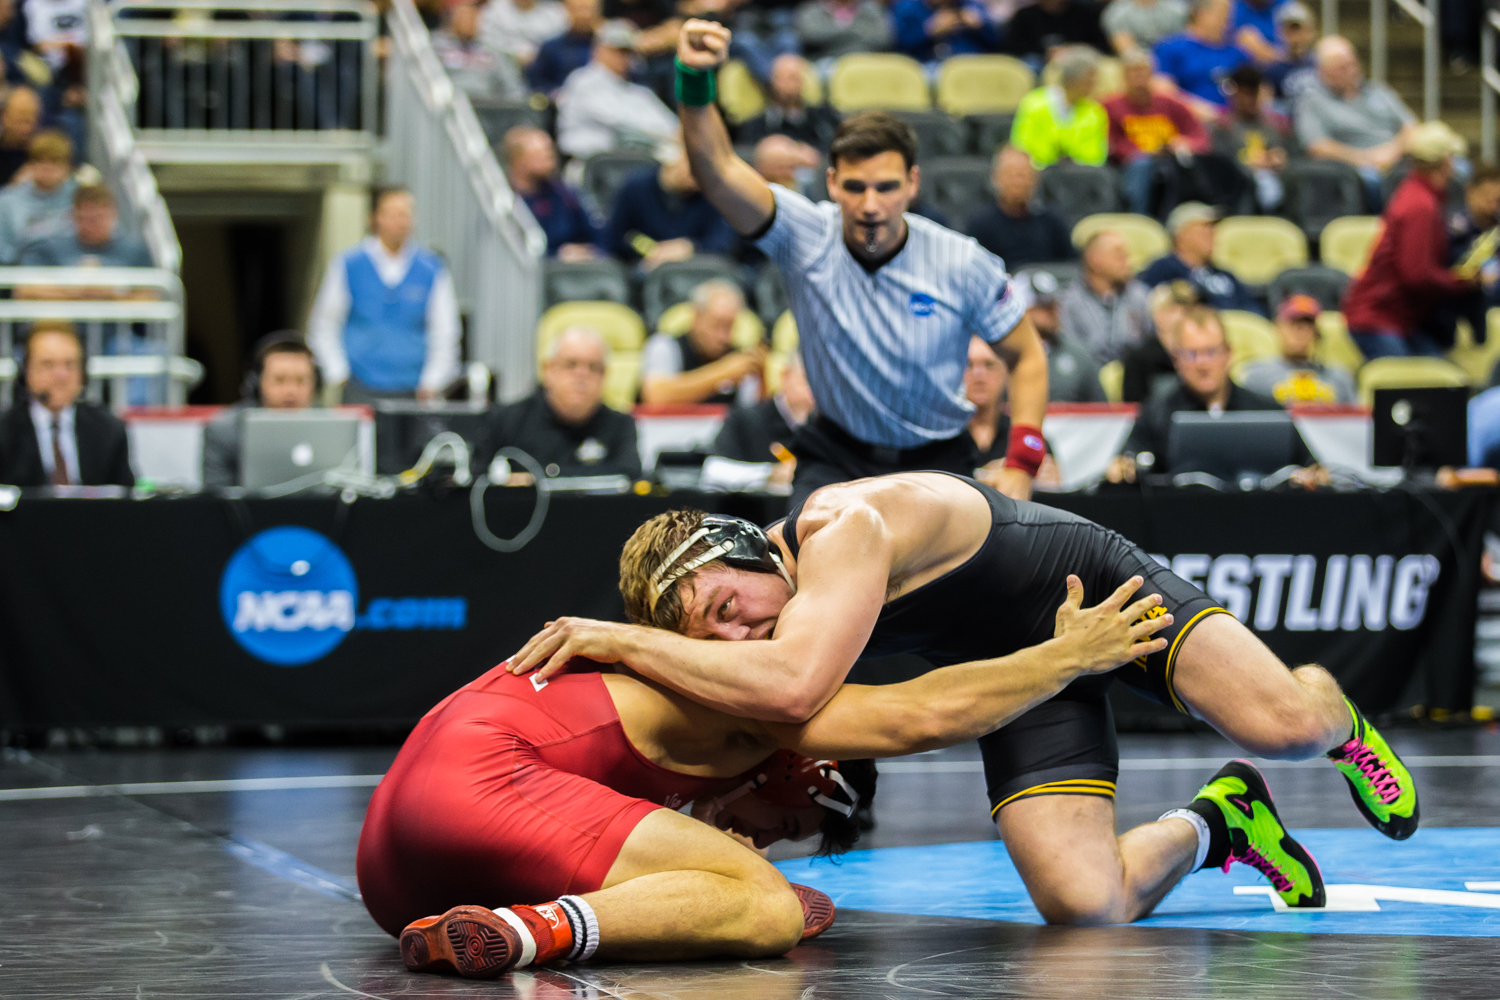 Iowa%E2%80%99s+197-pound+Jacob+Warner+wrestles+Cornell%E2%80%99s+Benjamin+Honis+during+the+fifth+session+of+the+2019+NCAA+D1+Wrestling+Championships+at+the+PPG+Paints+Arena+in+Pittsburgh%2C+PA+on+Saturday%2C+March+23%2C+2019.+Warner+won+by+decision%2C+8-4%2C+and+earned+seventh+in+the+weight+class.